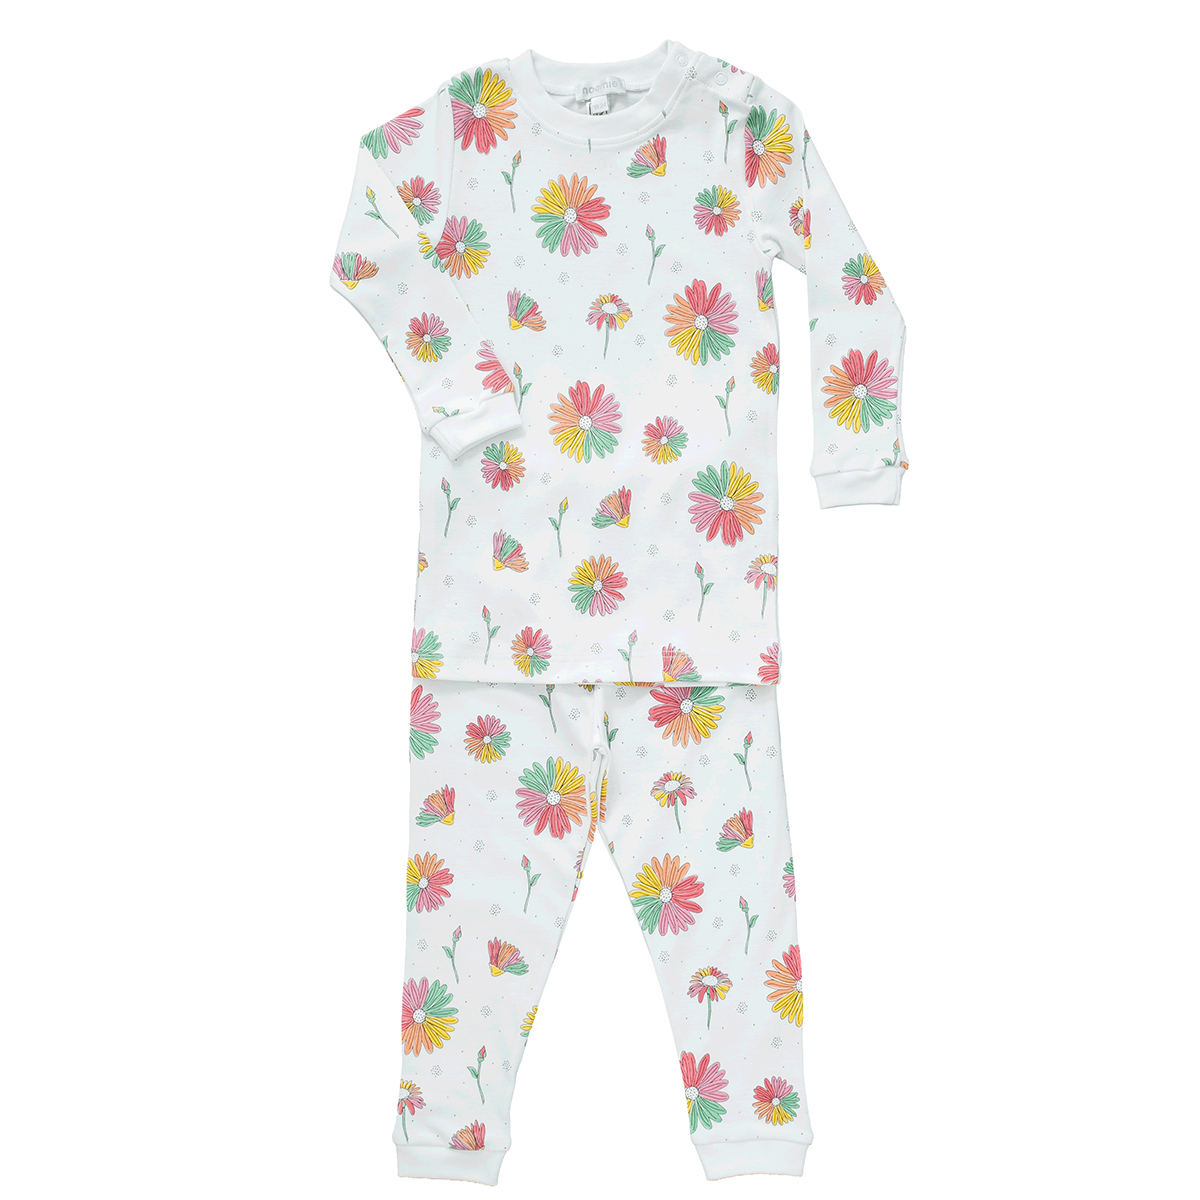 Baby Noomie Two Piece PJ - Daisies